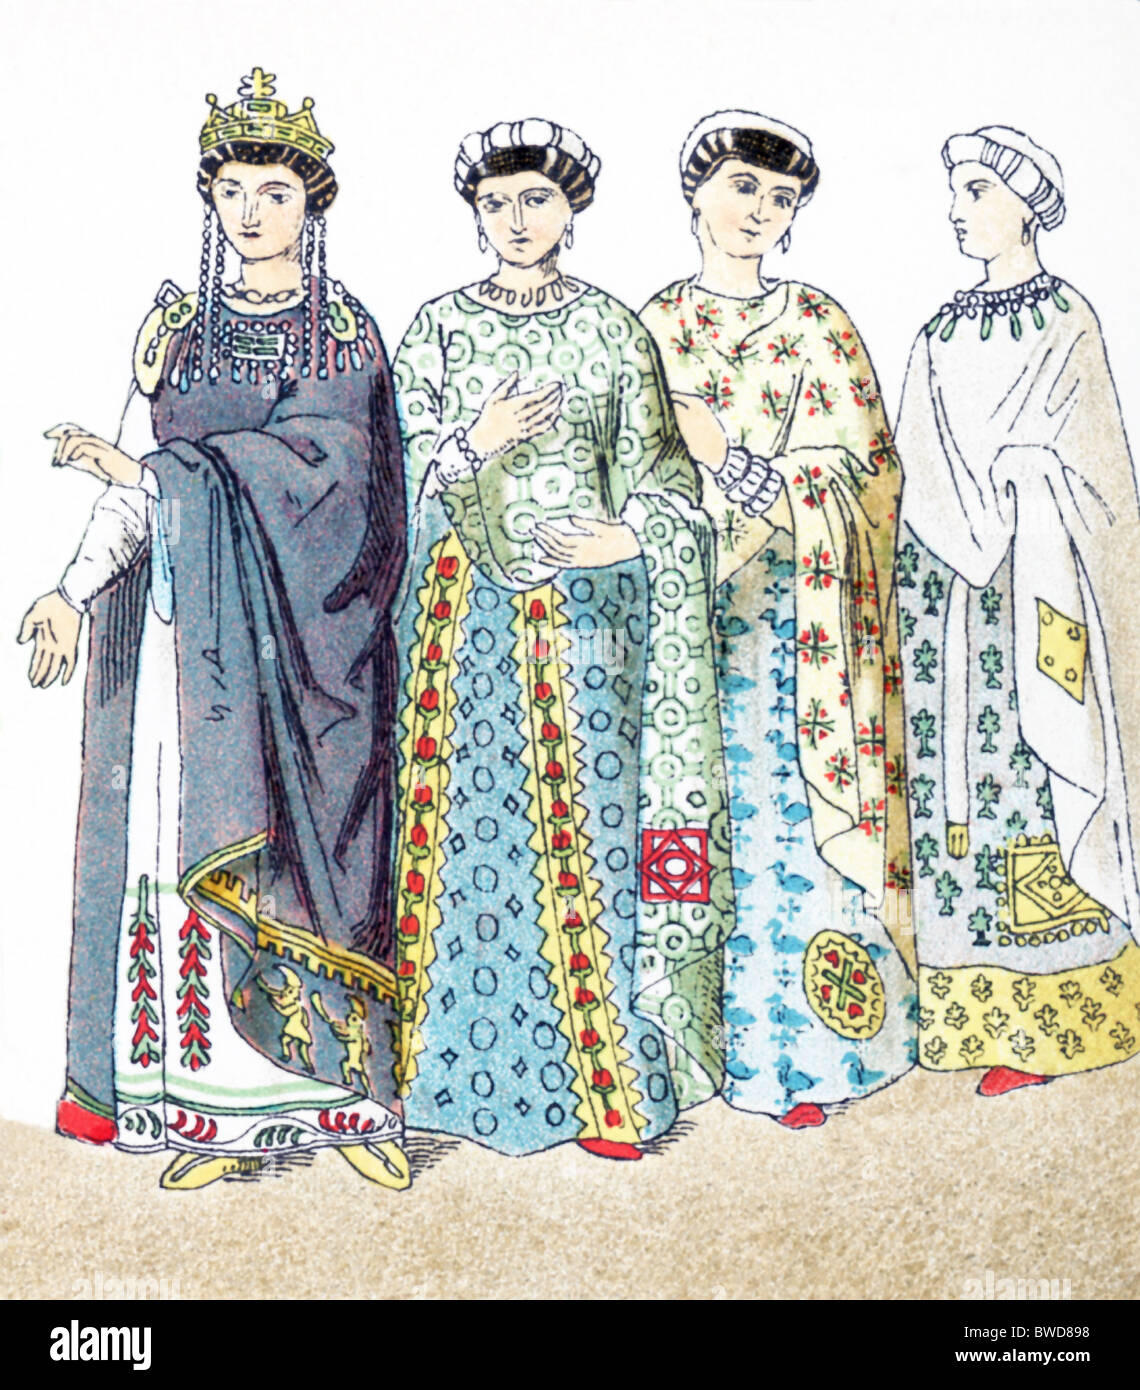 The figures represent Byzantines between A.D. 300 and 700: Empress Theodora and three noblewomen. - Stock Image